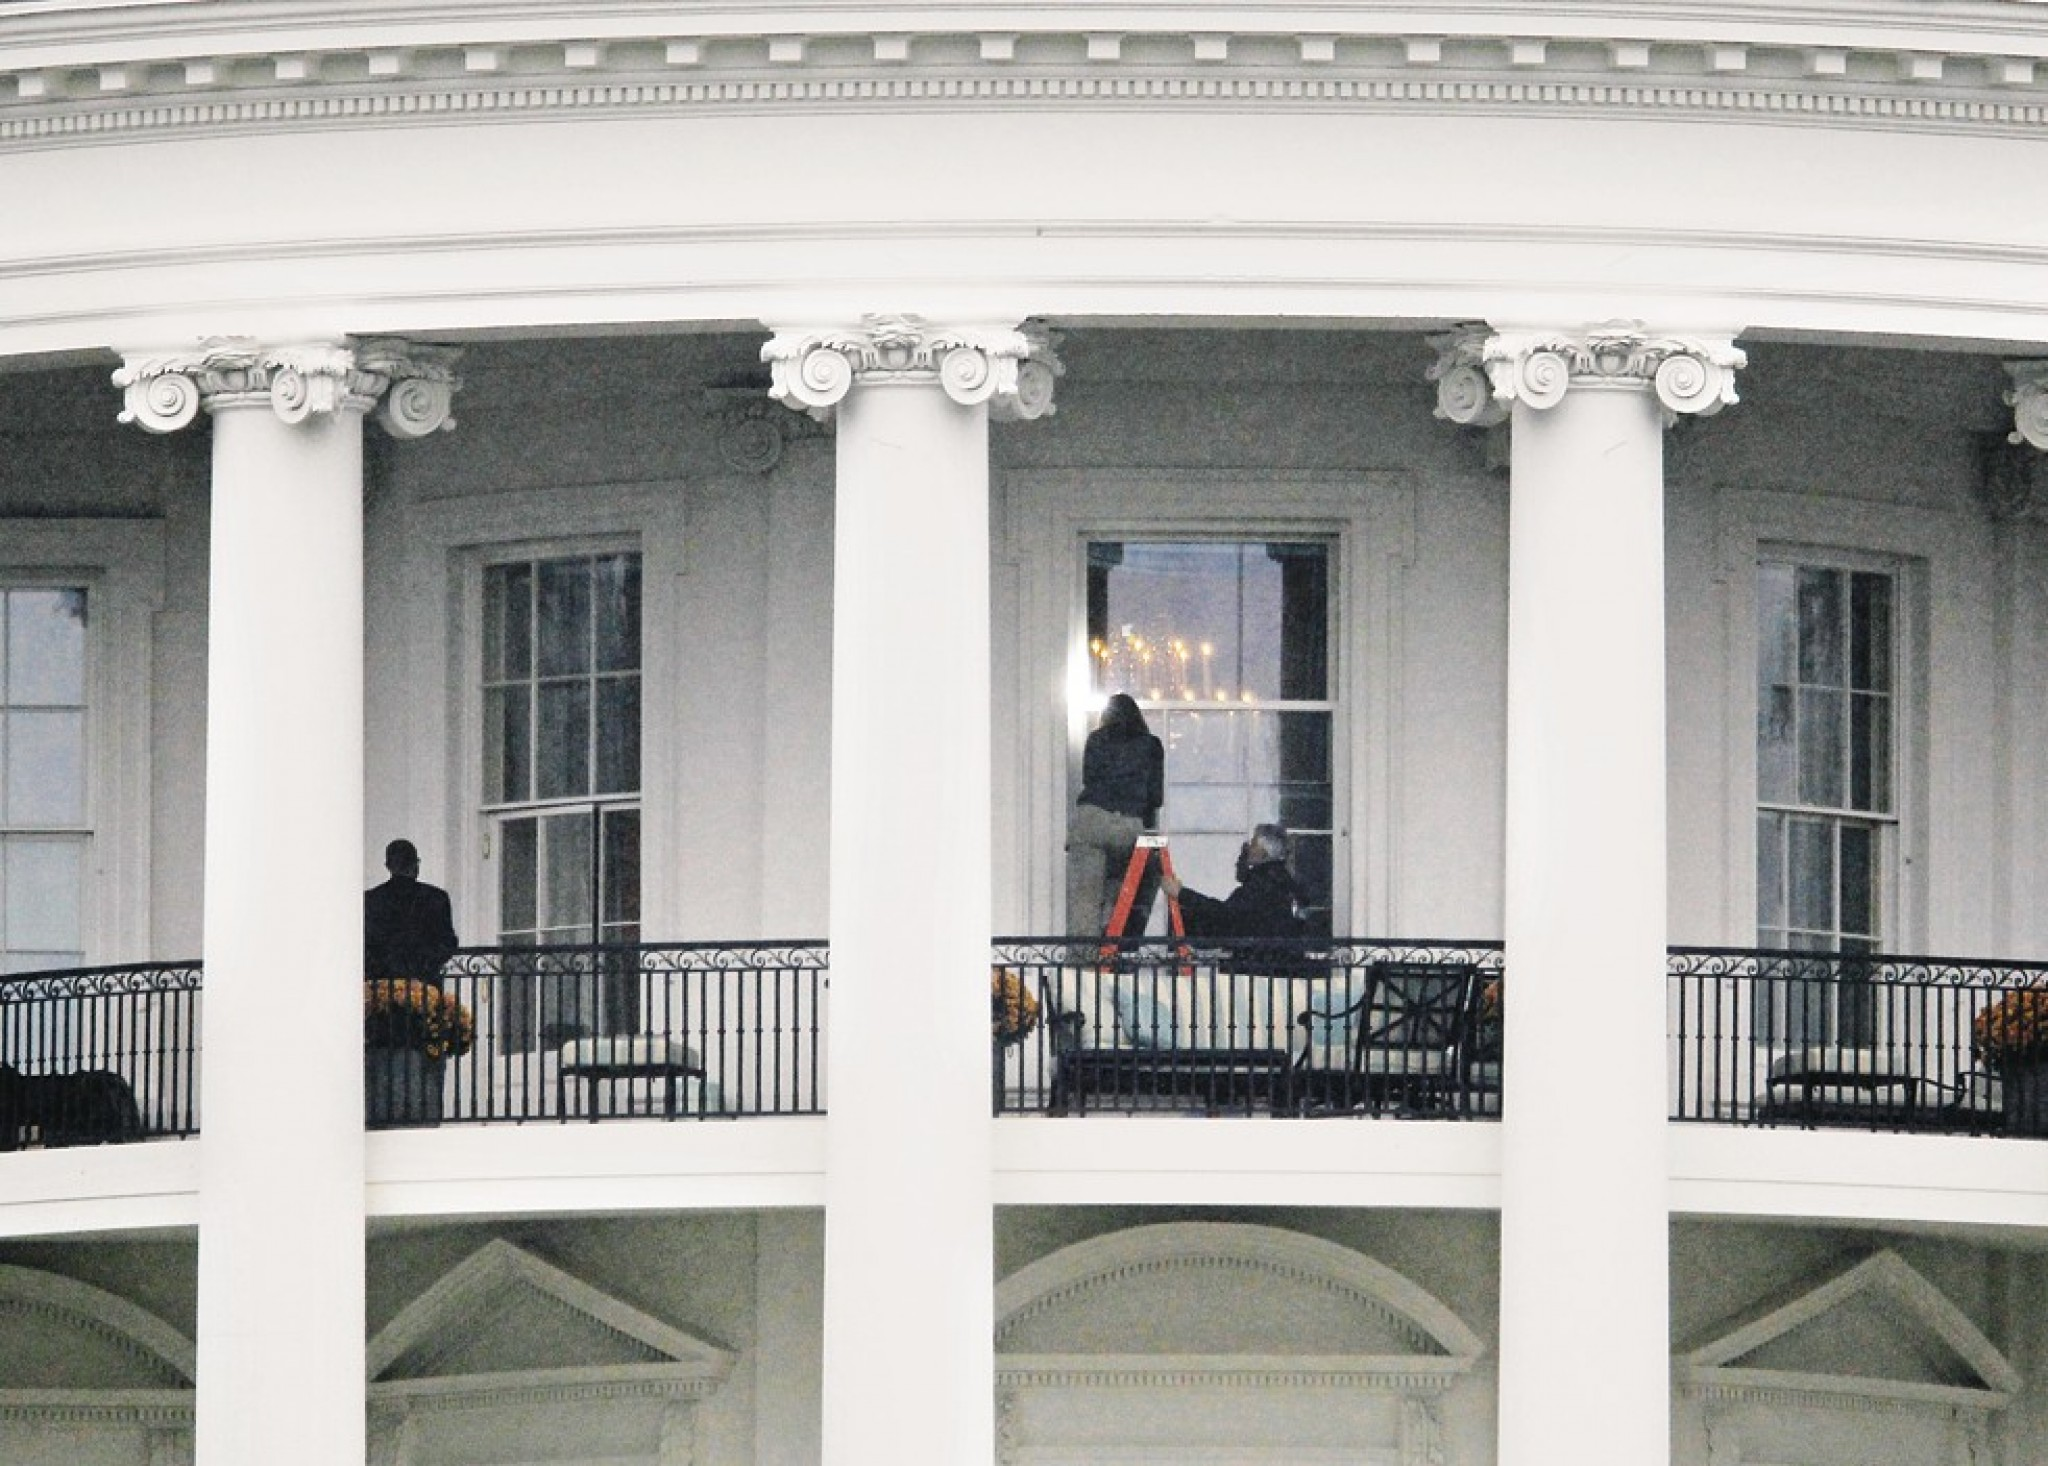 Three Years Ago, A Gunman Drove Up To The Presidential Residence And Fired  Seven Shots At The White House, Smashing A Window On The Second Floor.